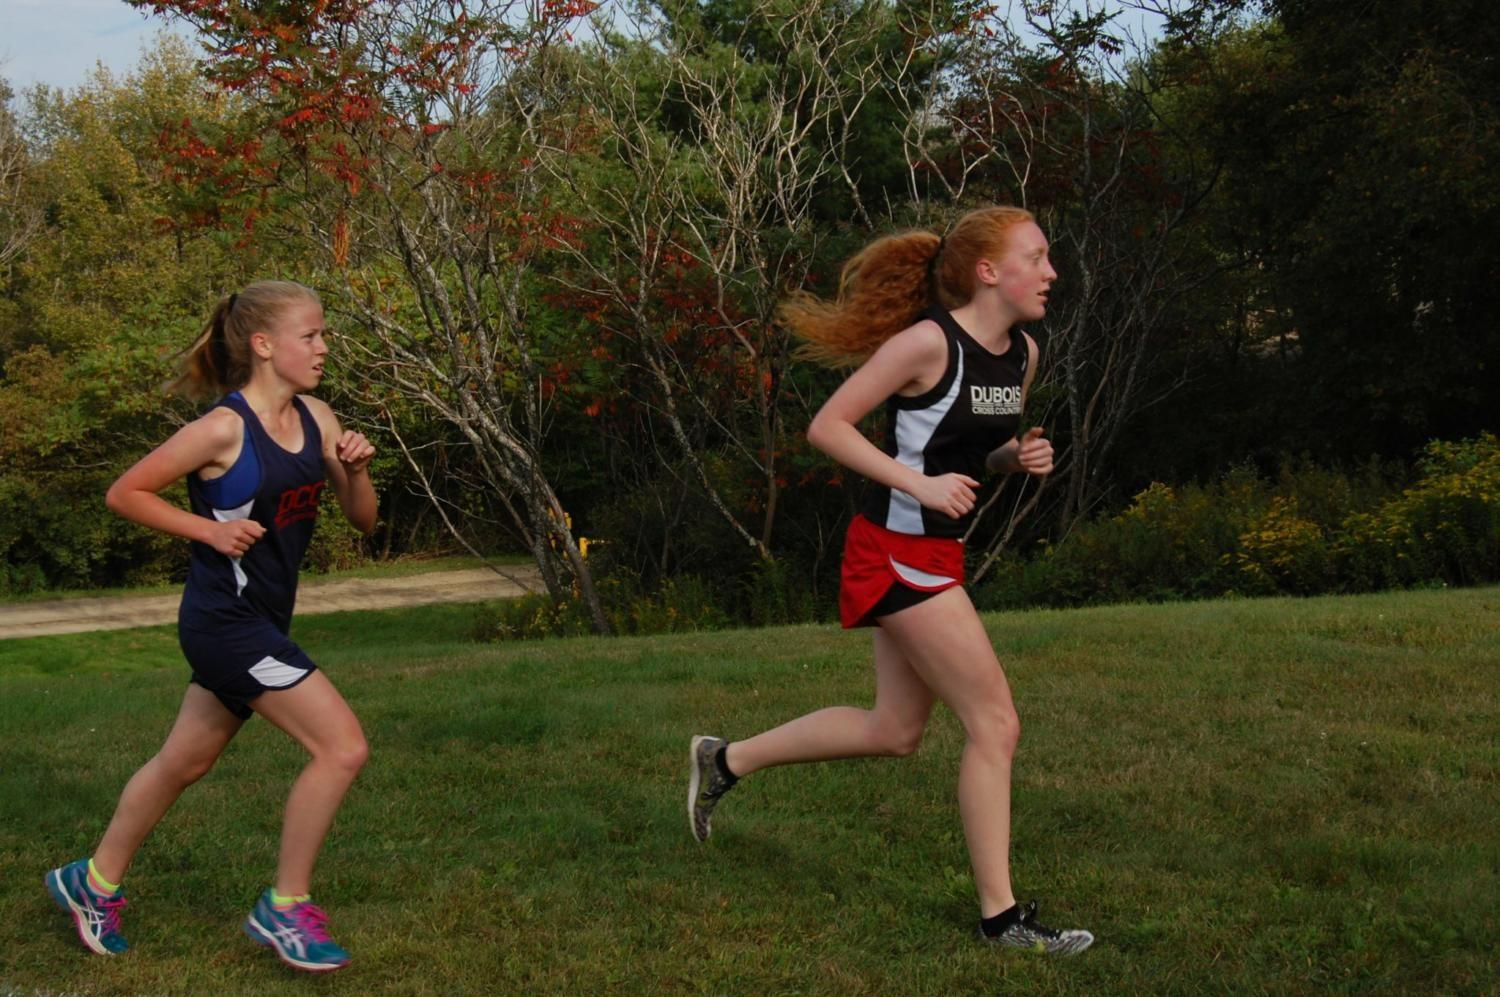 DCC CARDINALS OUTRUN BROCKWAY IN CROSS COUNTRY MEET - ENDS 34-YEAR SLUMP